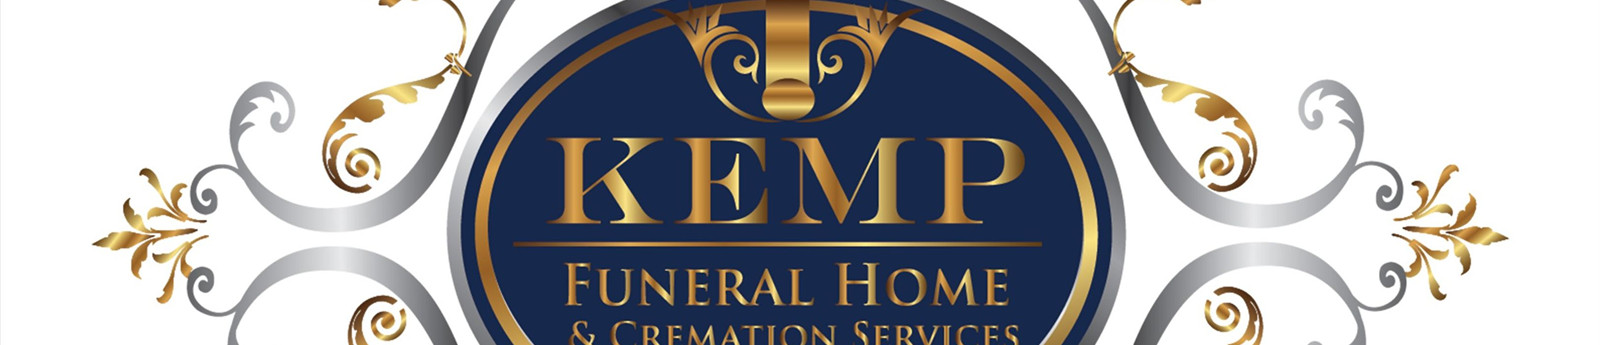 About Us | Kemp Funeral Home & Cremation Services